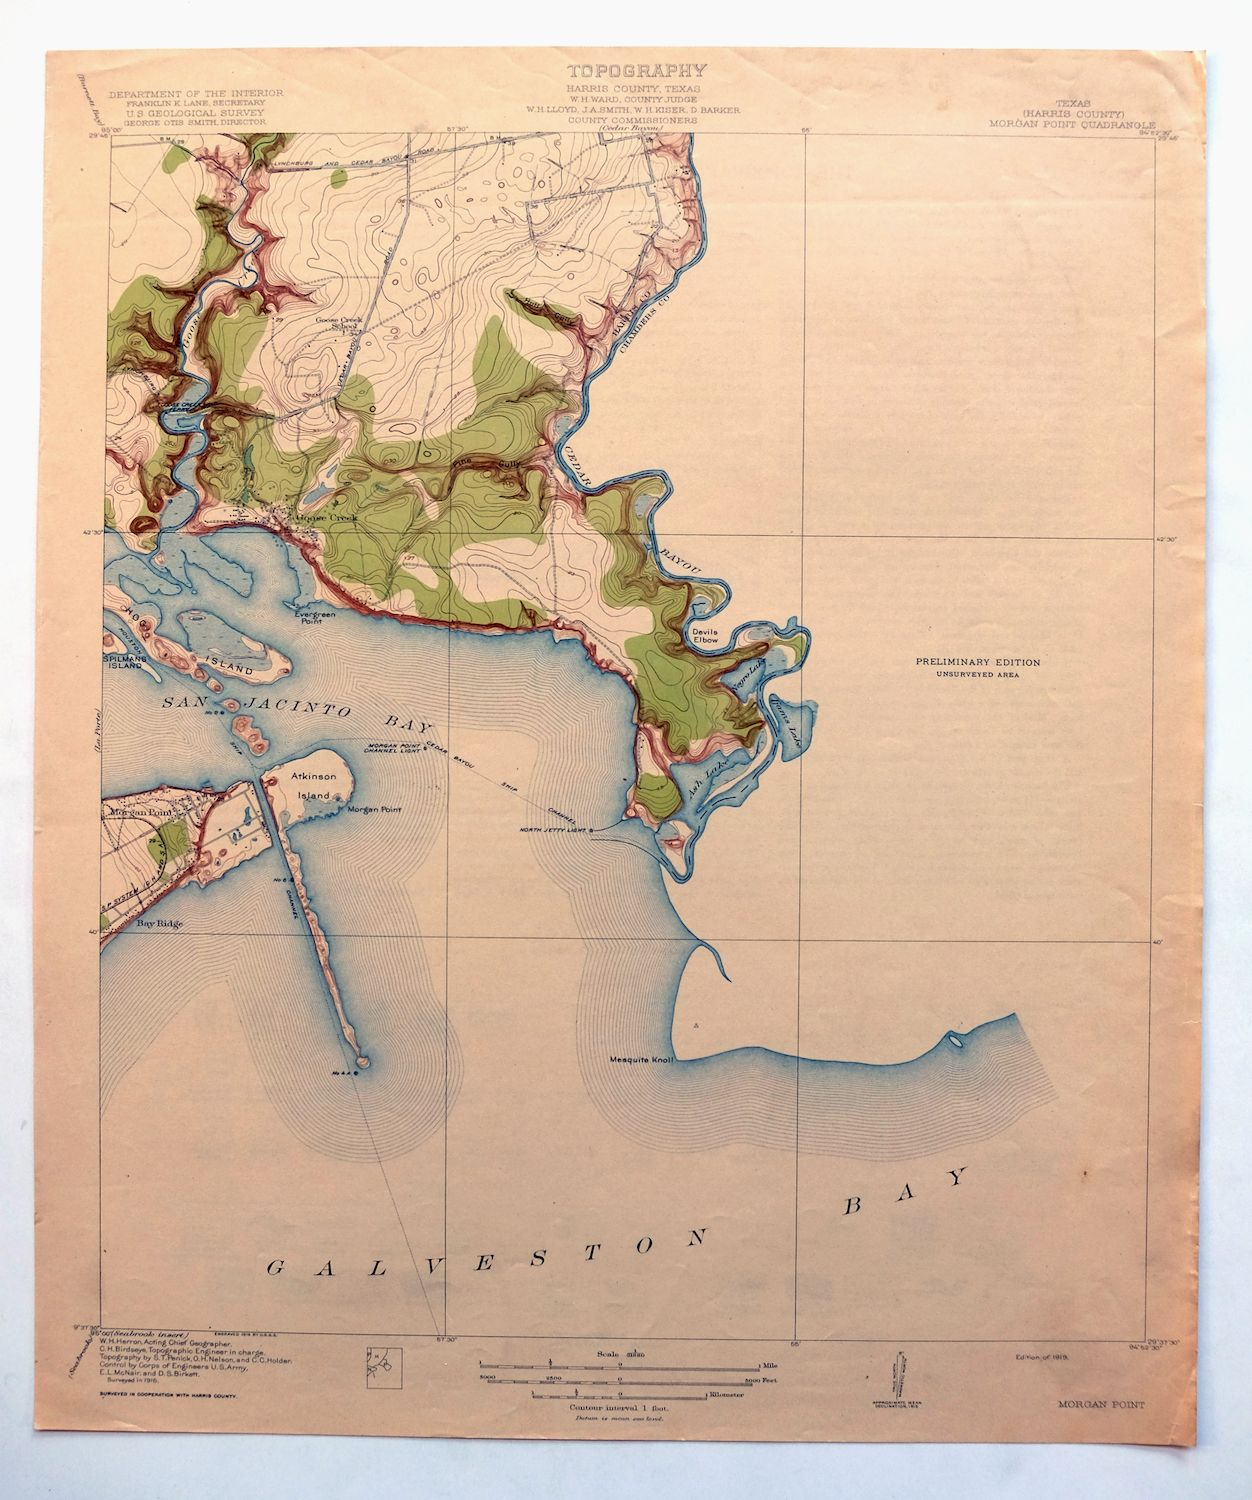 Topographic Map Usgs.1919 Morgan Point Texas Antique Usgs Topographic Map Baytown 7 5